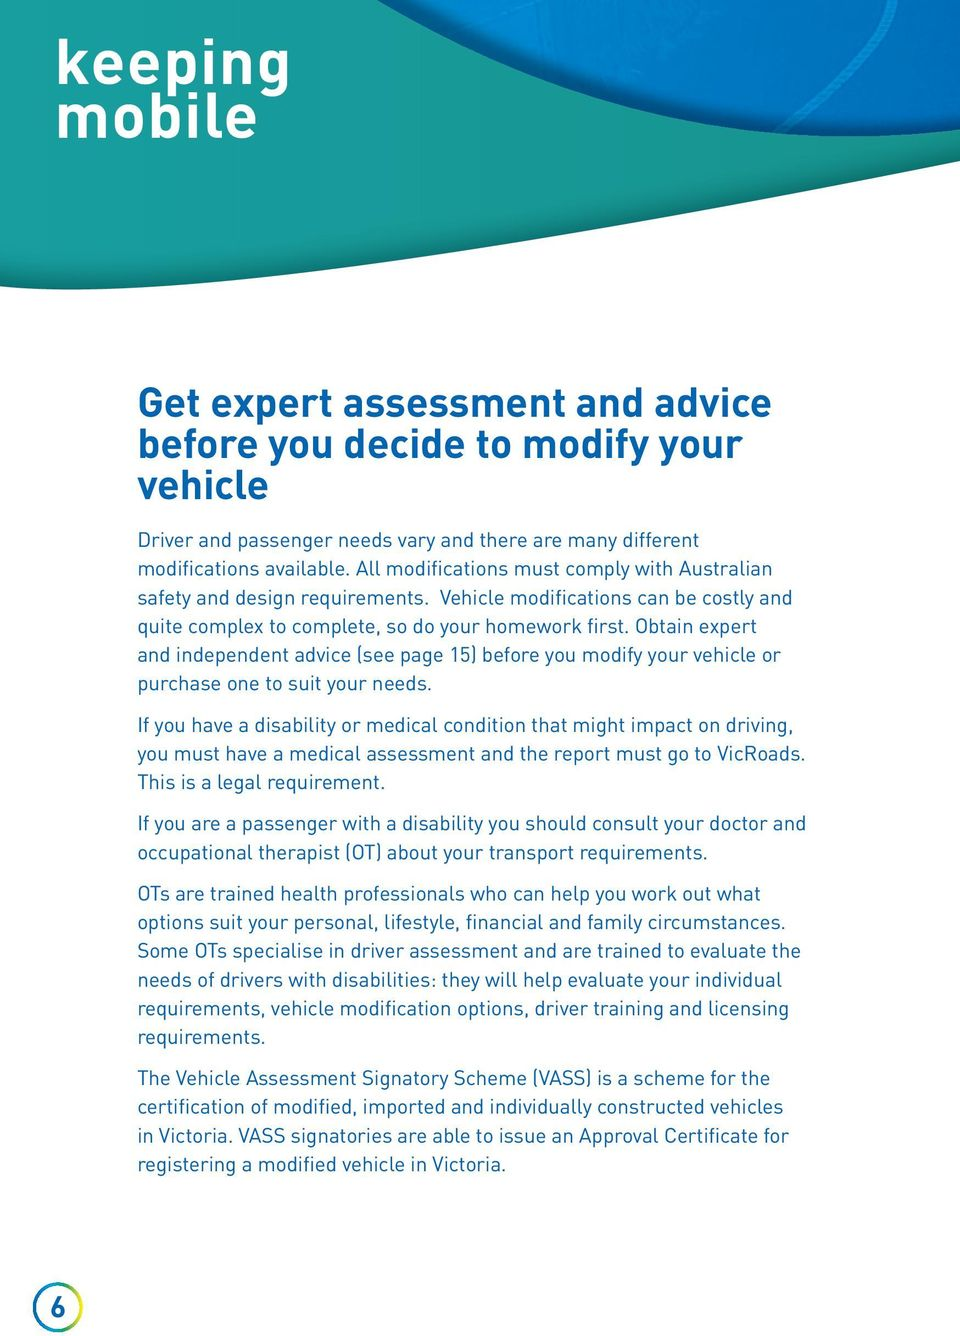 Obtain expert and independent advice (see page 15) before you modify your vehicle or purchase one to suit your needs.